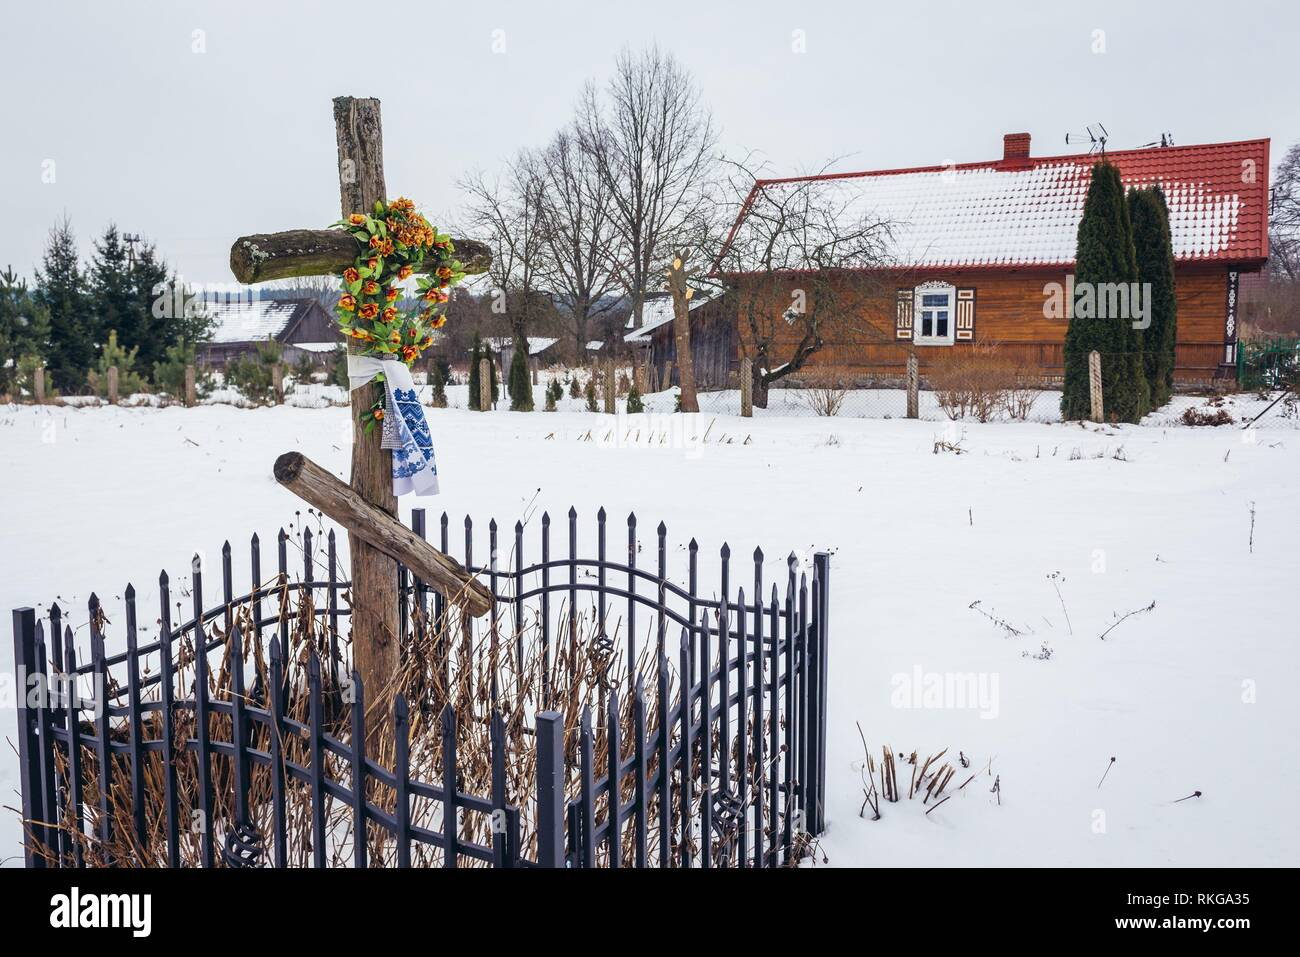 Old wayside cross in Soce village on so called The Land of Open Shutters trail, famous for traditional architecture in Podlaskie Voivodeship, Poland. - Stock Image